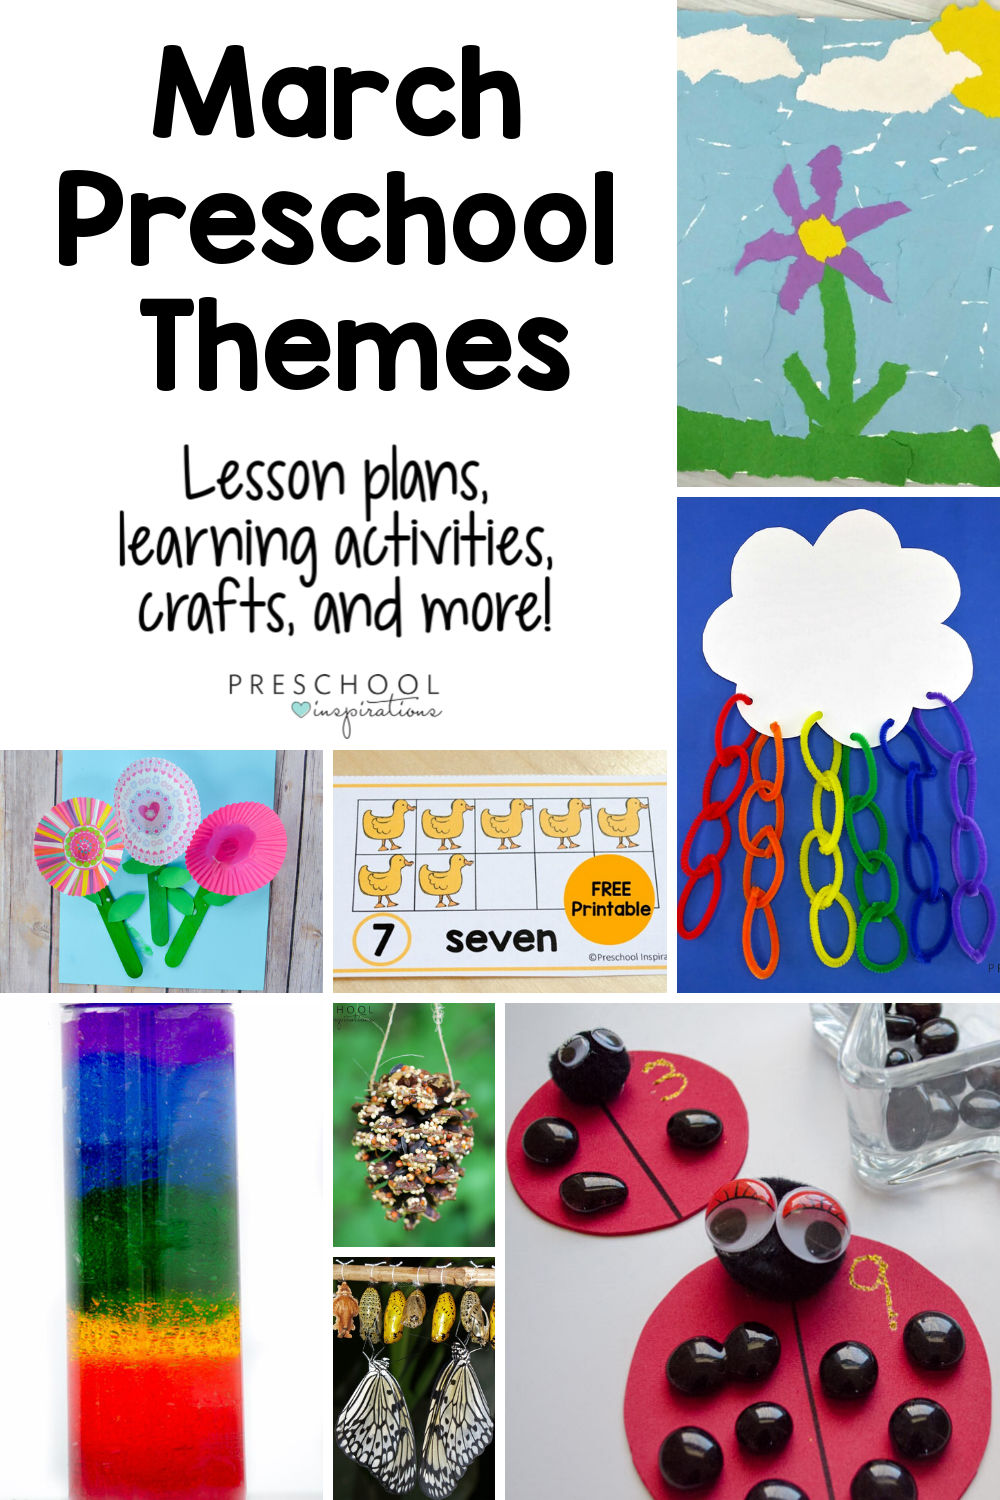 Use themes to make teaching preschool a breeze this March! Find lesson plans and other activities for great teaching themes such as bugs and butterflies, flowers, garden, worms, spring, and more!